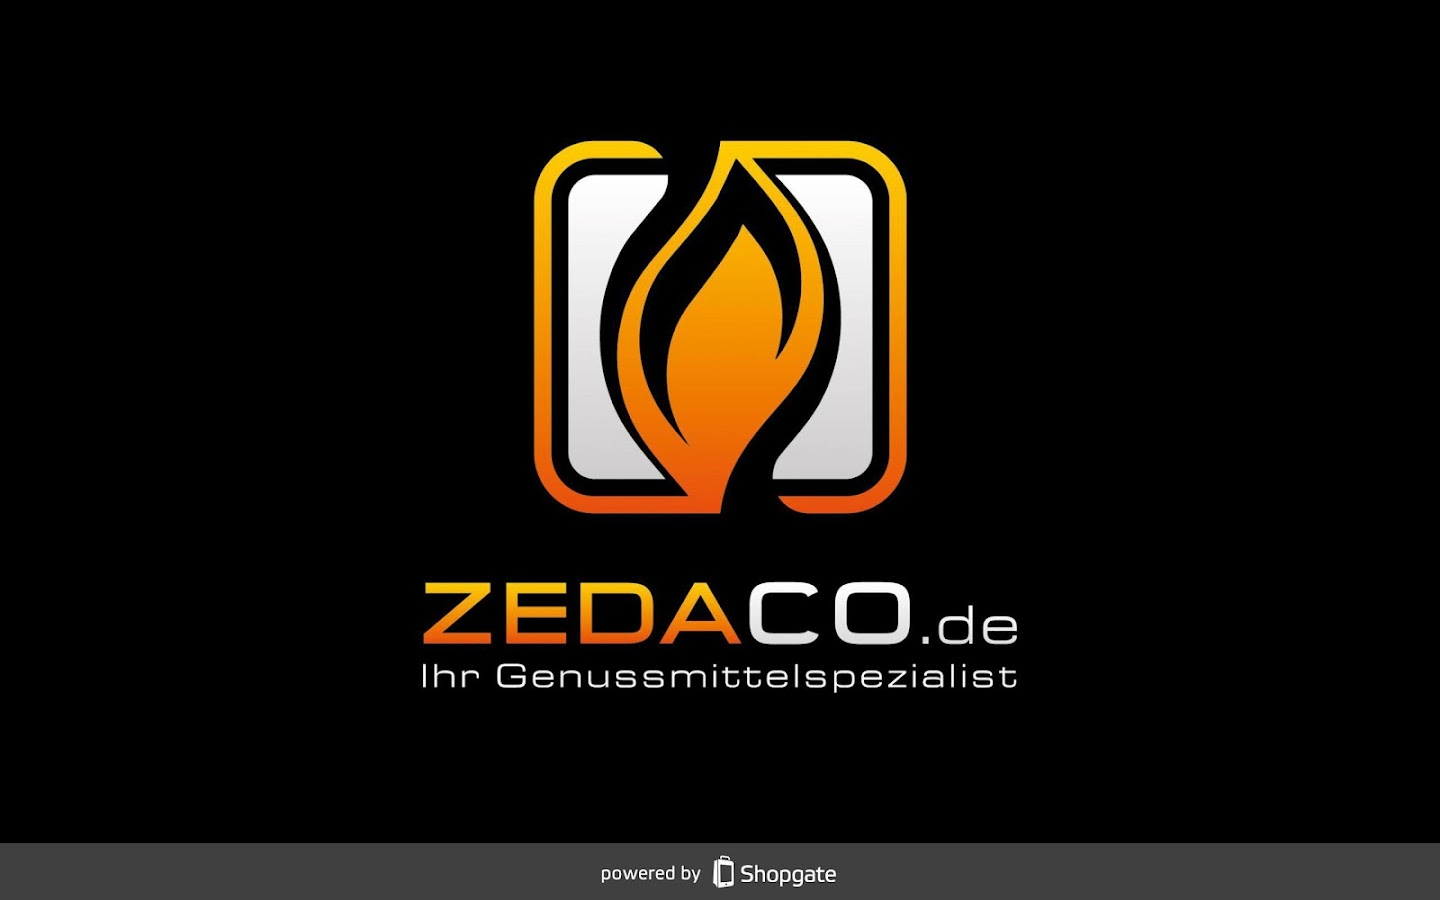 zedaco.de - screenshot